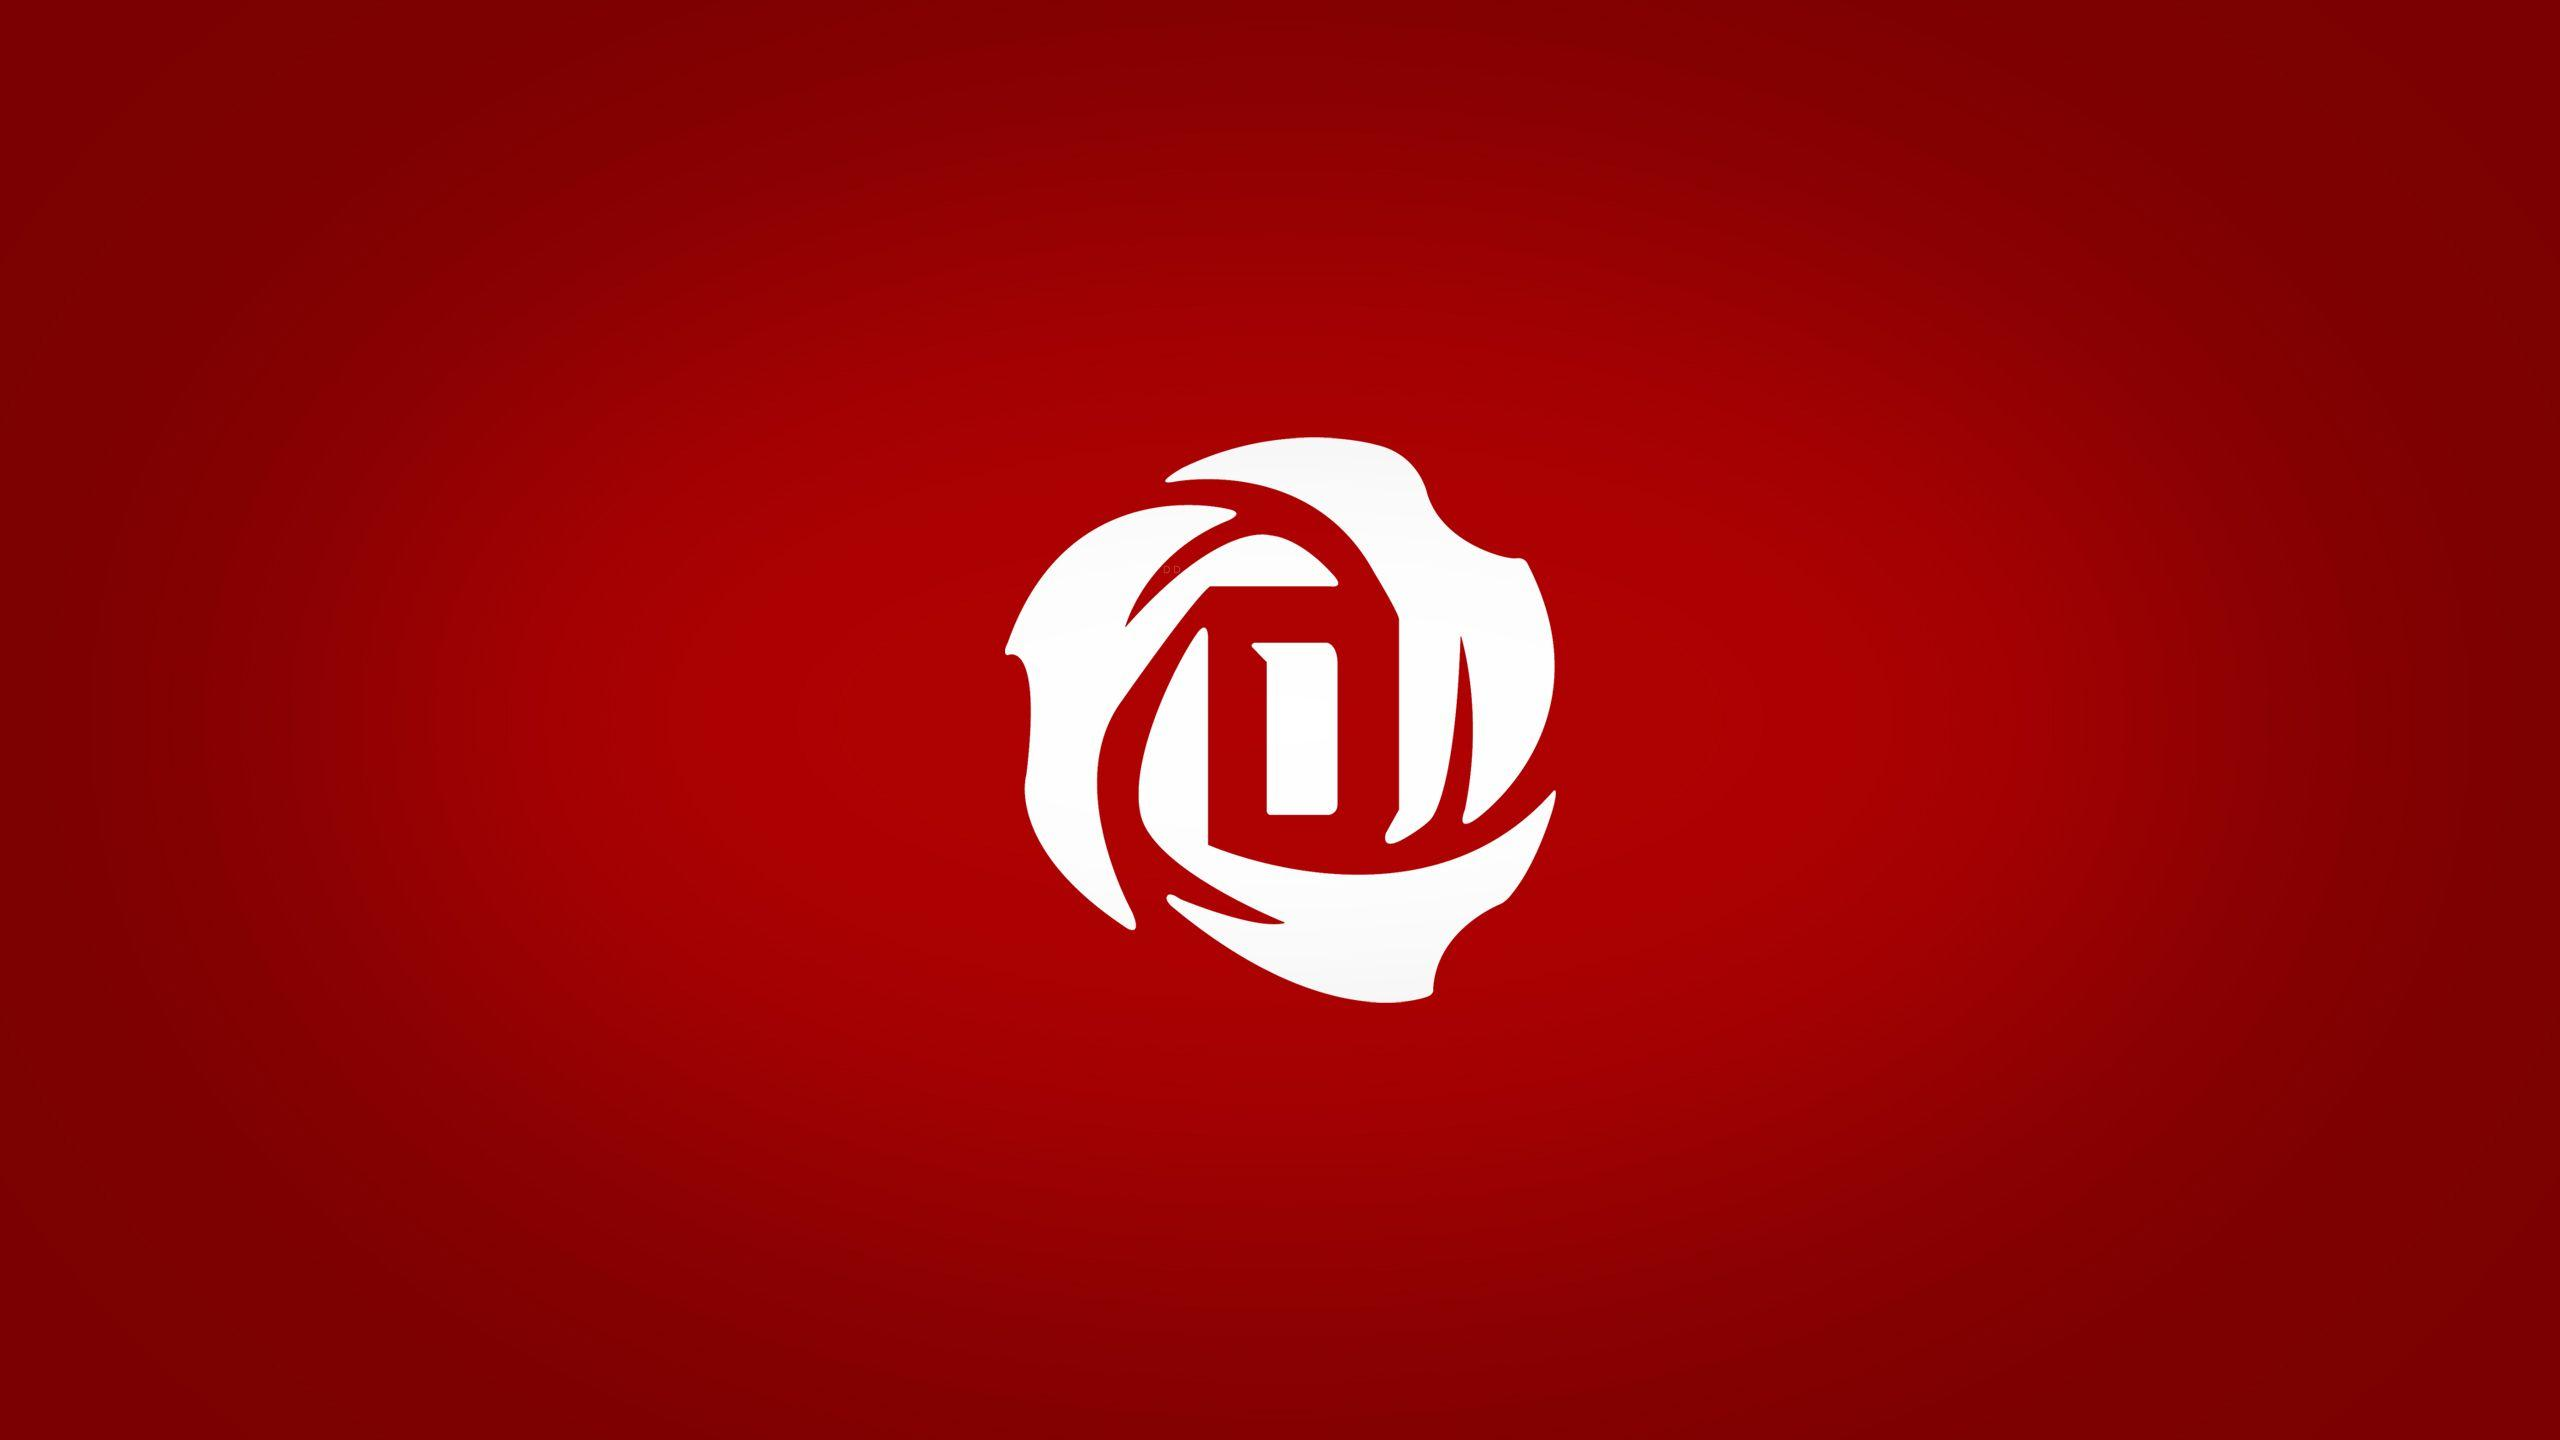 Wallpaper Derrick Rose Drose Logo Red